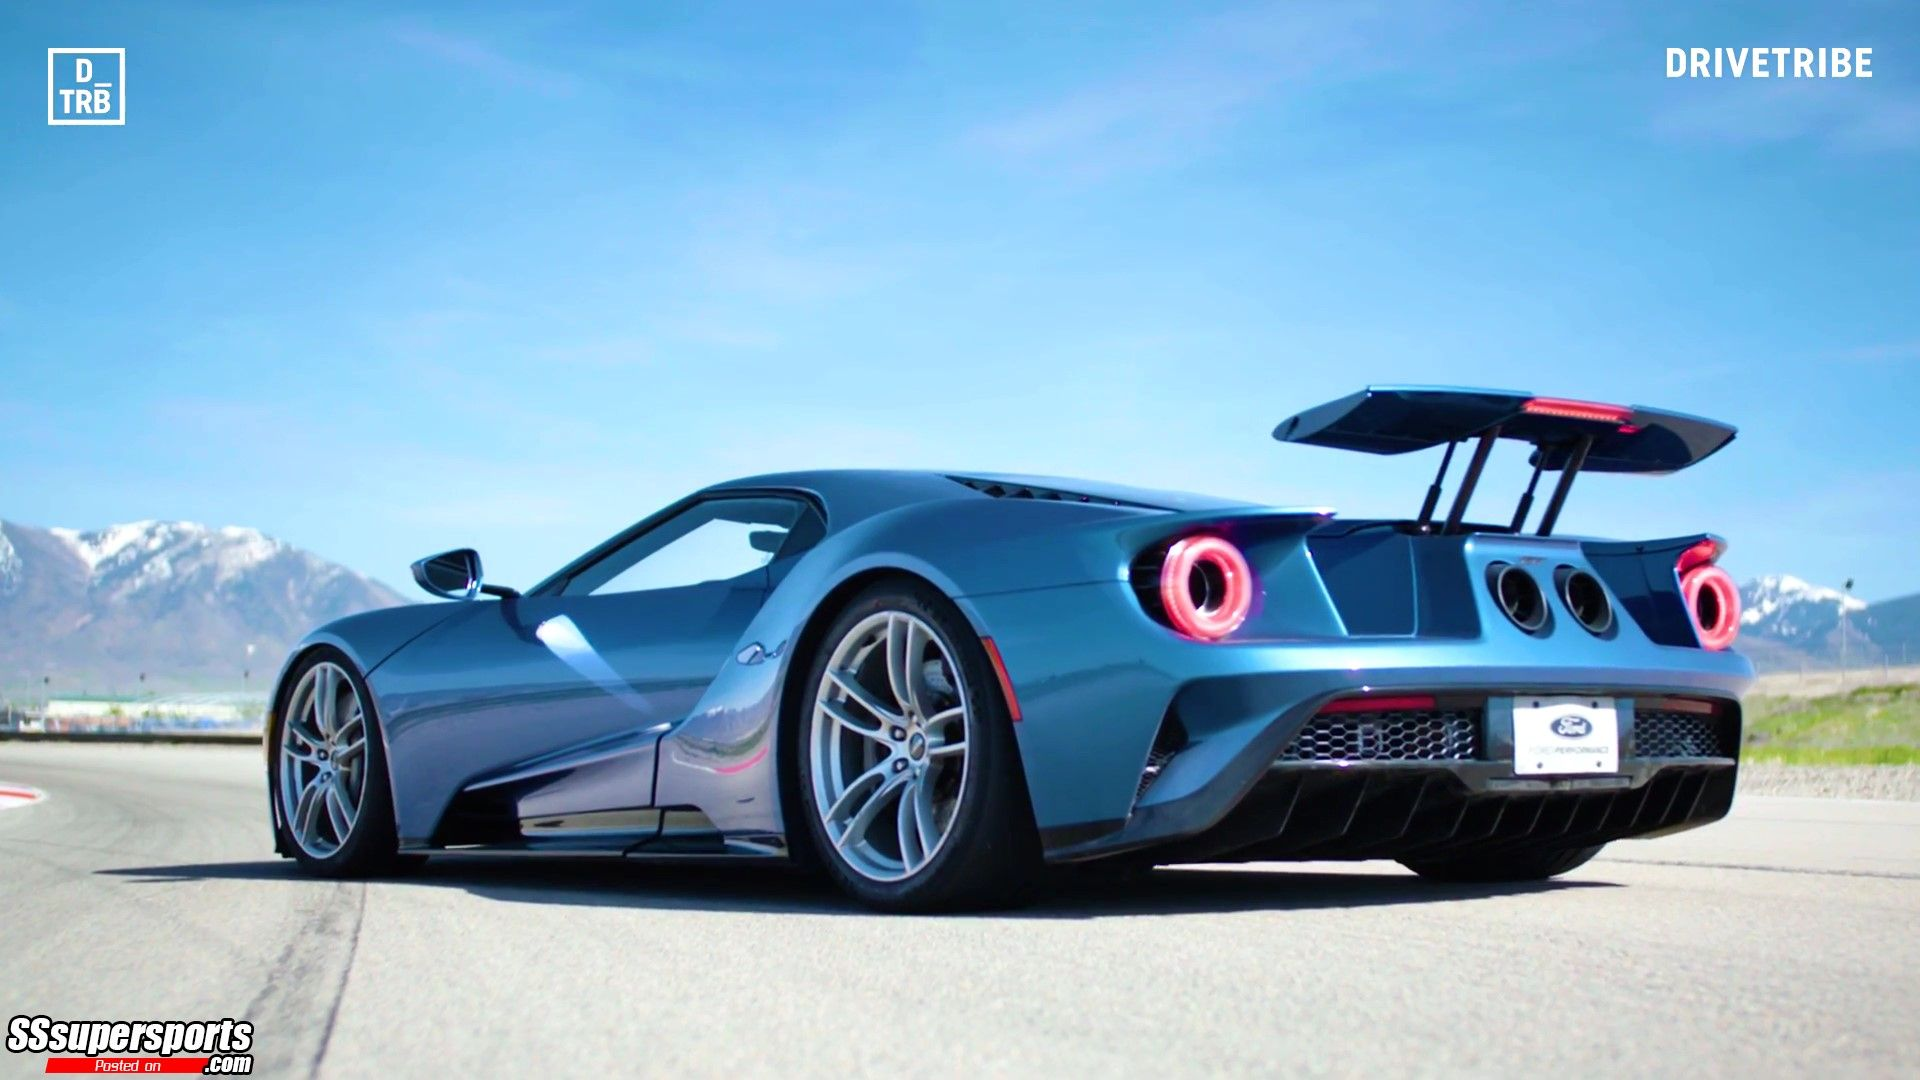 8 Blue Ford Gt Rear Side View Wing Up Sssupersports Com Ford Gt Super Cars Ford